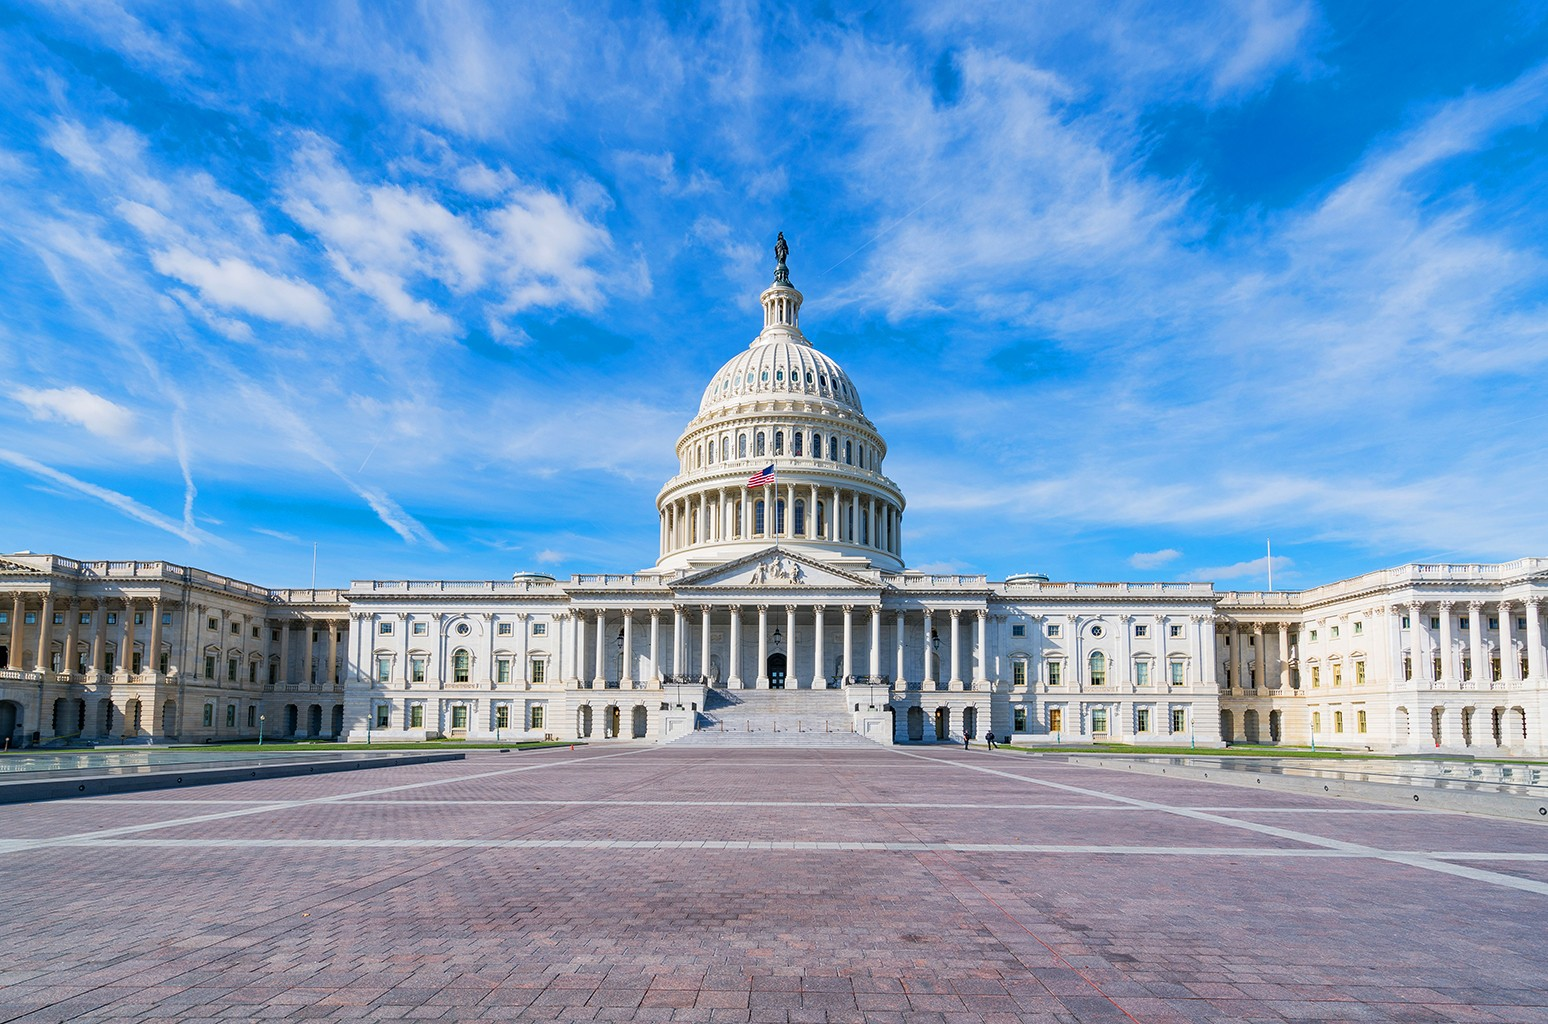 The United States Capitol photographed on Oct. 31, 2016 in Washington D.C.